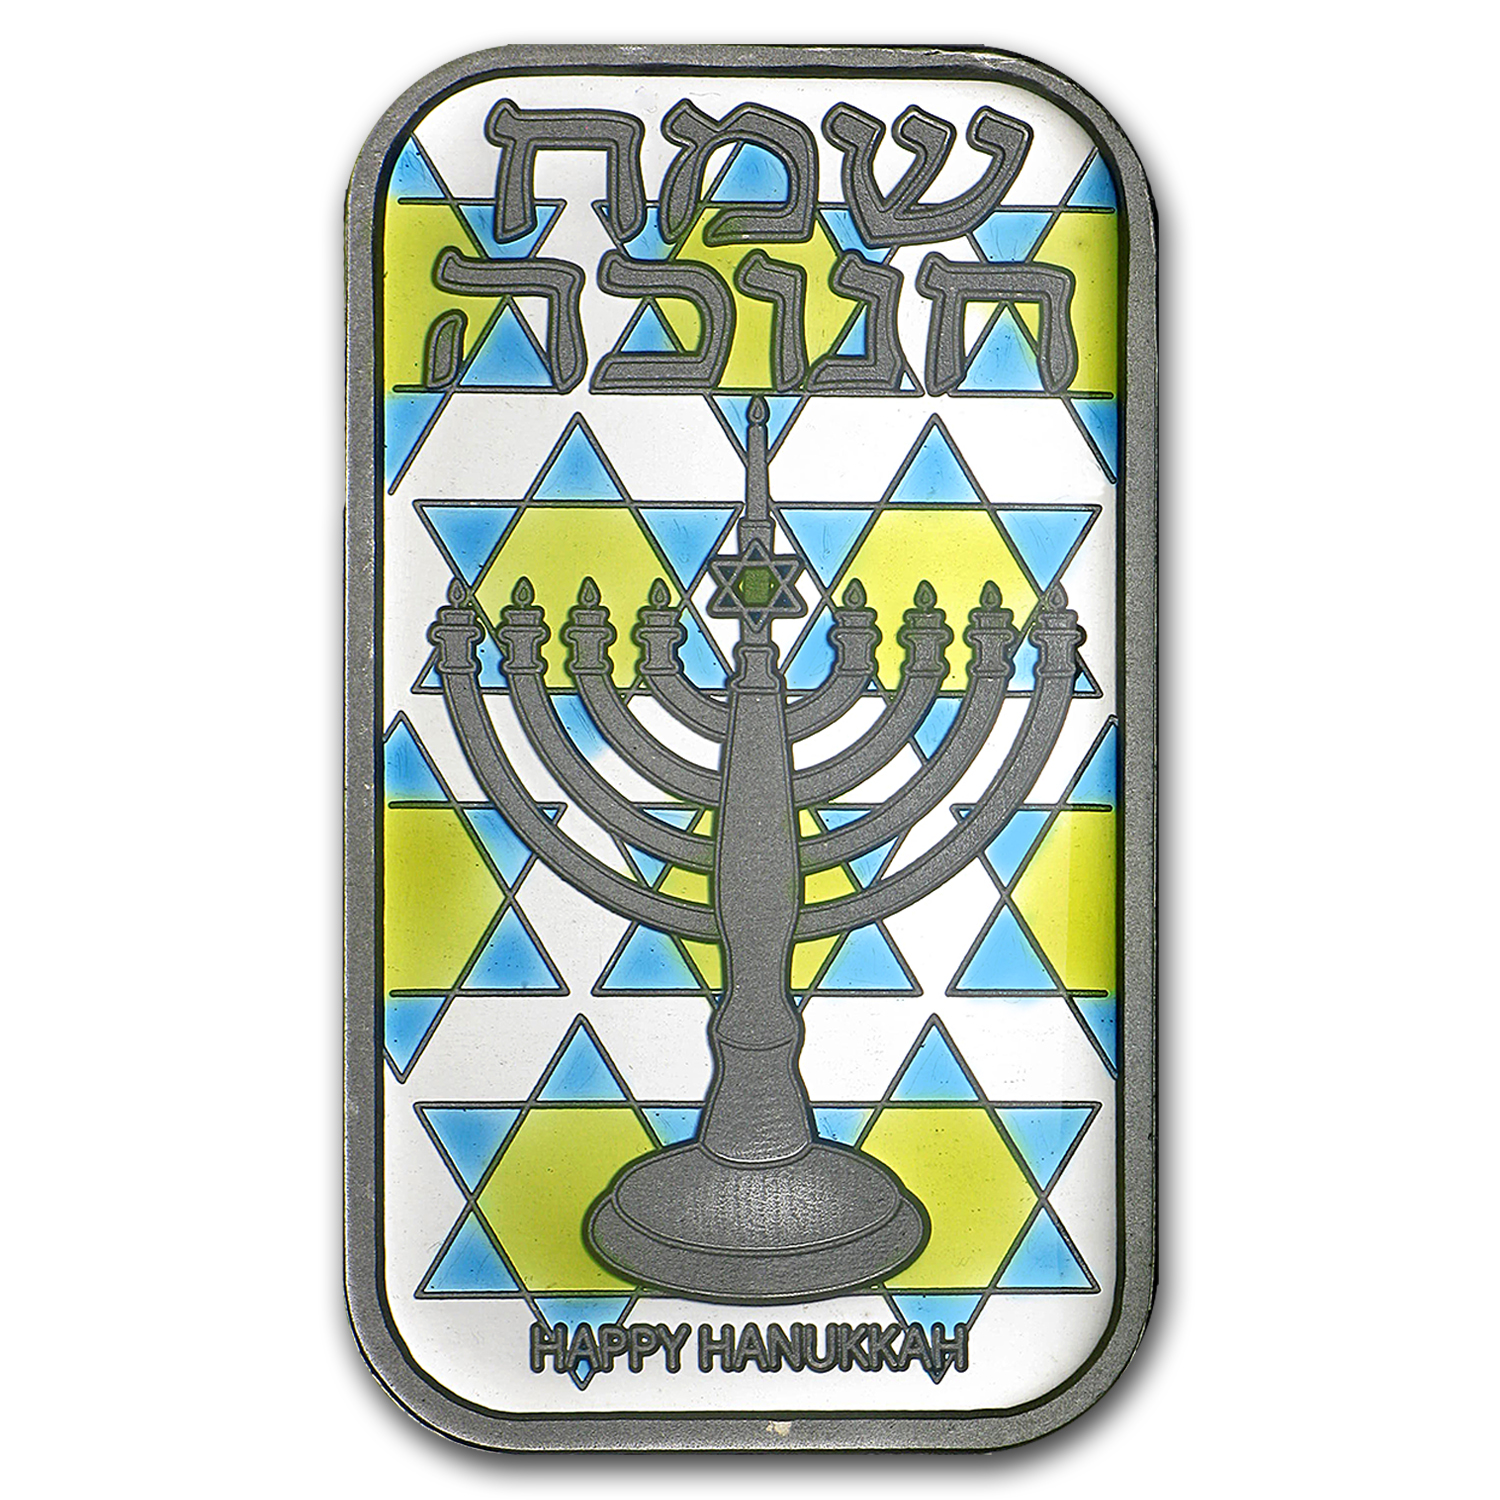 1 oz Silver Bar - Hanukkah (Enameled)